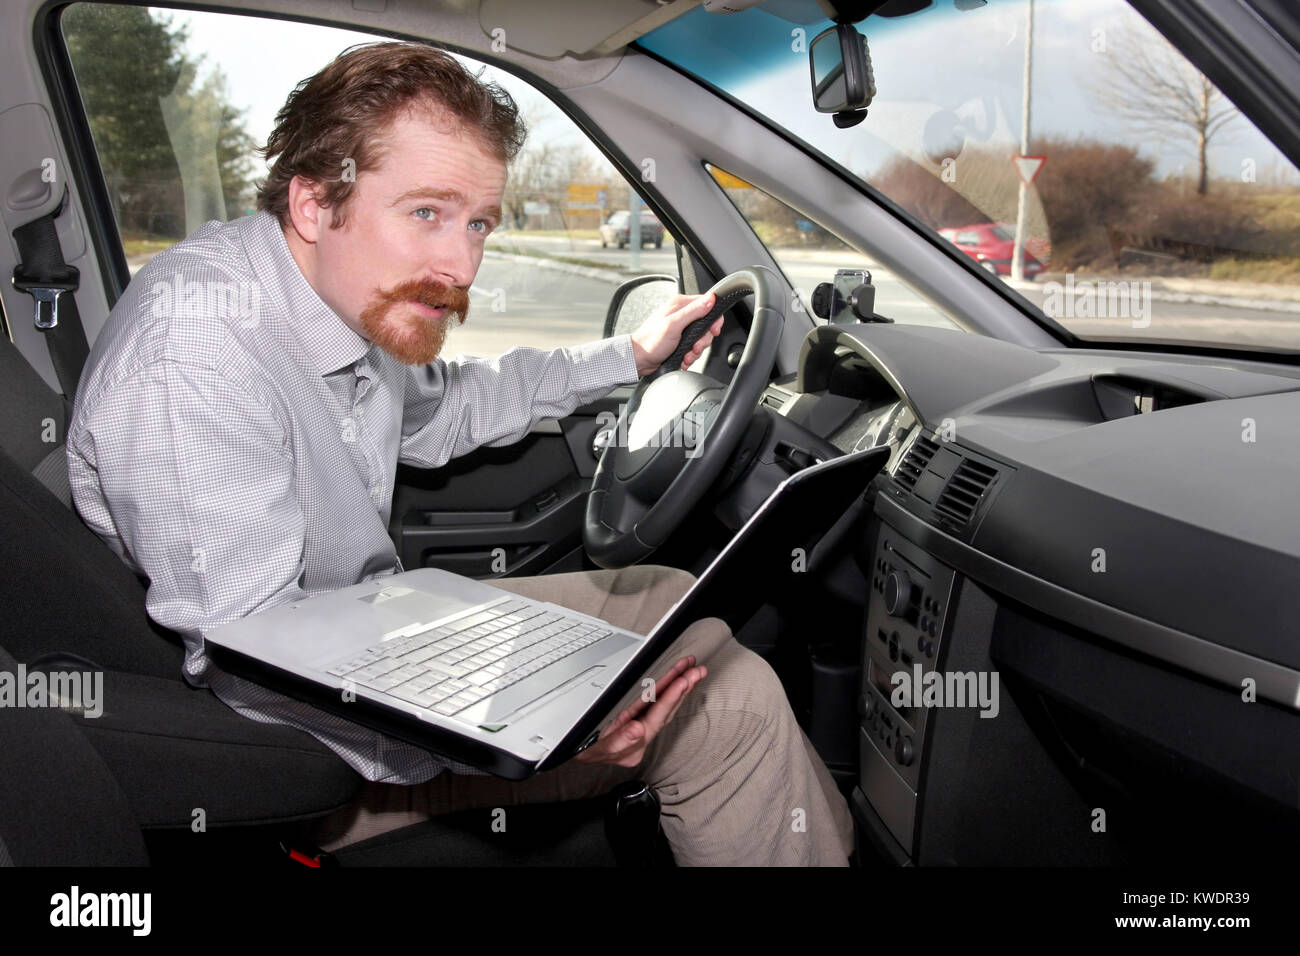 driver using gps laptop computer in a car - Stock Image